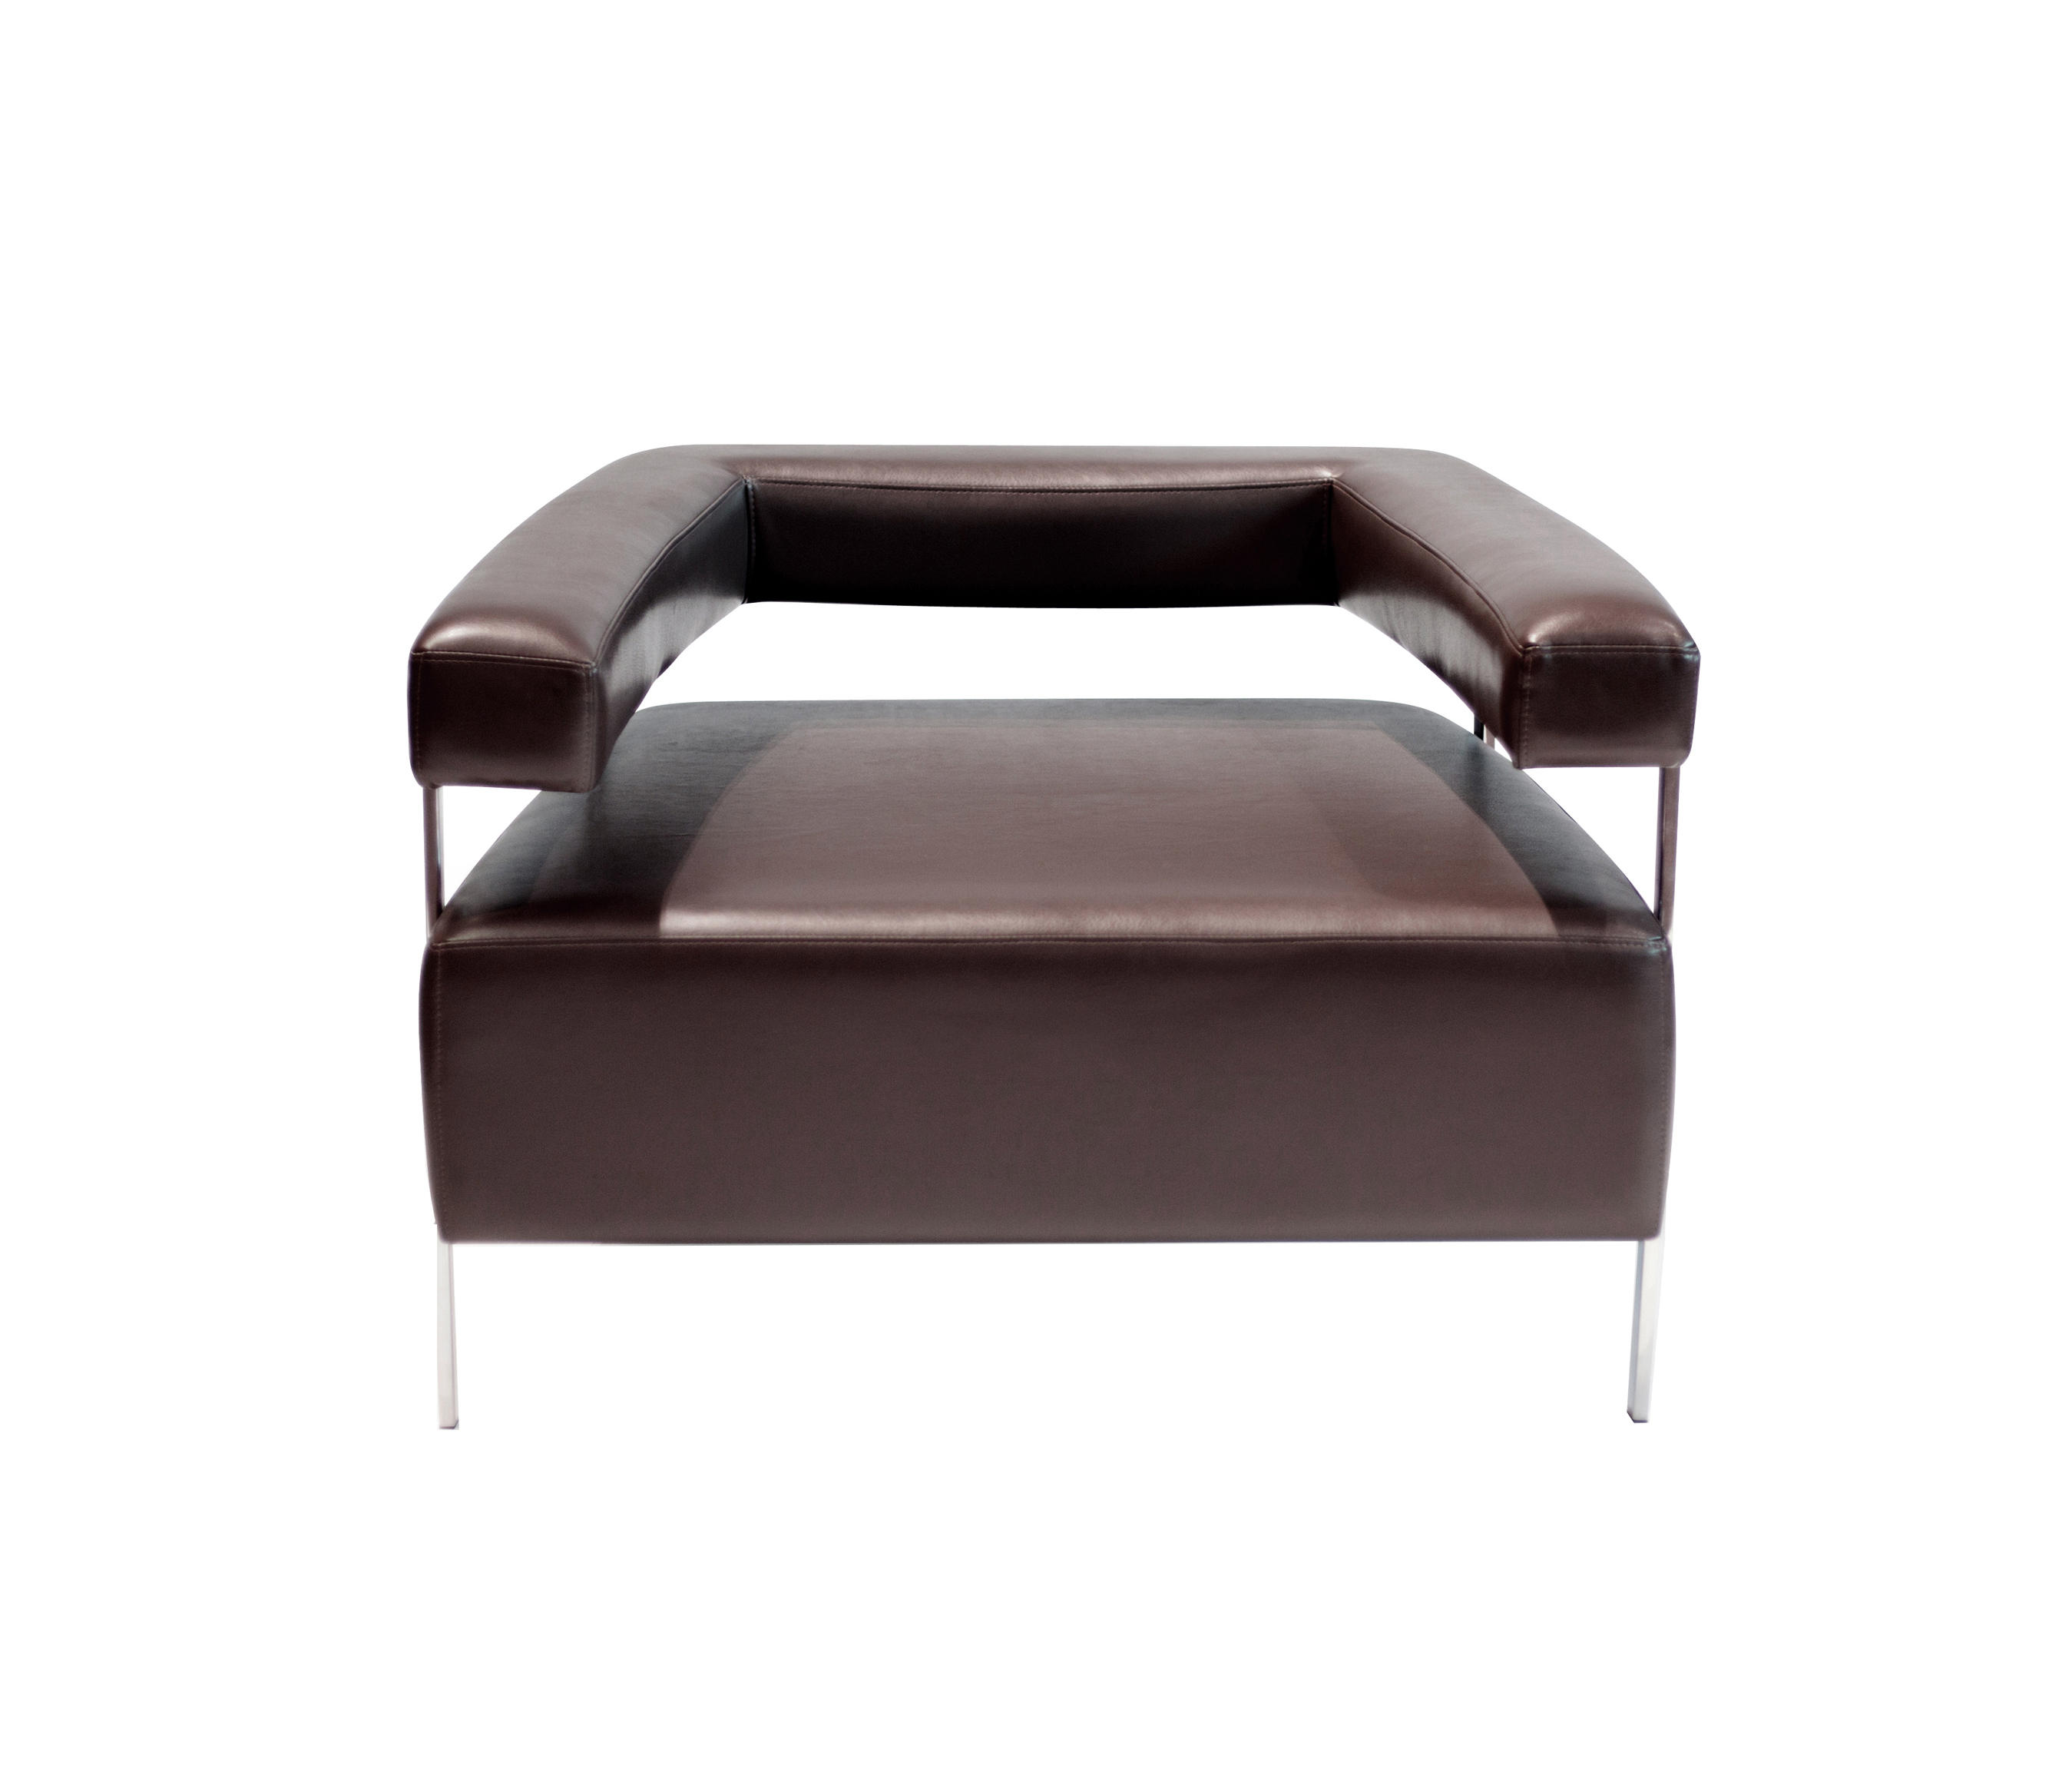 About A Chair 22 Armchair.Bali Chair Armchairs From Lounge 22 Architonic